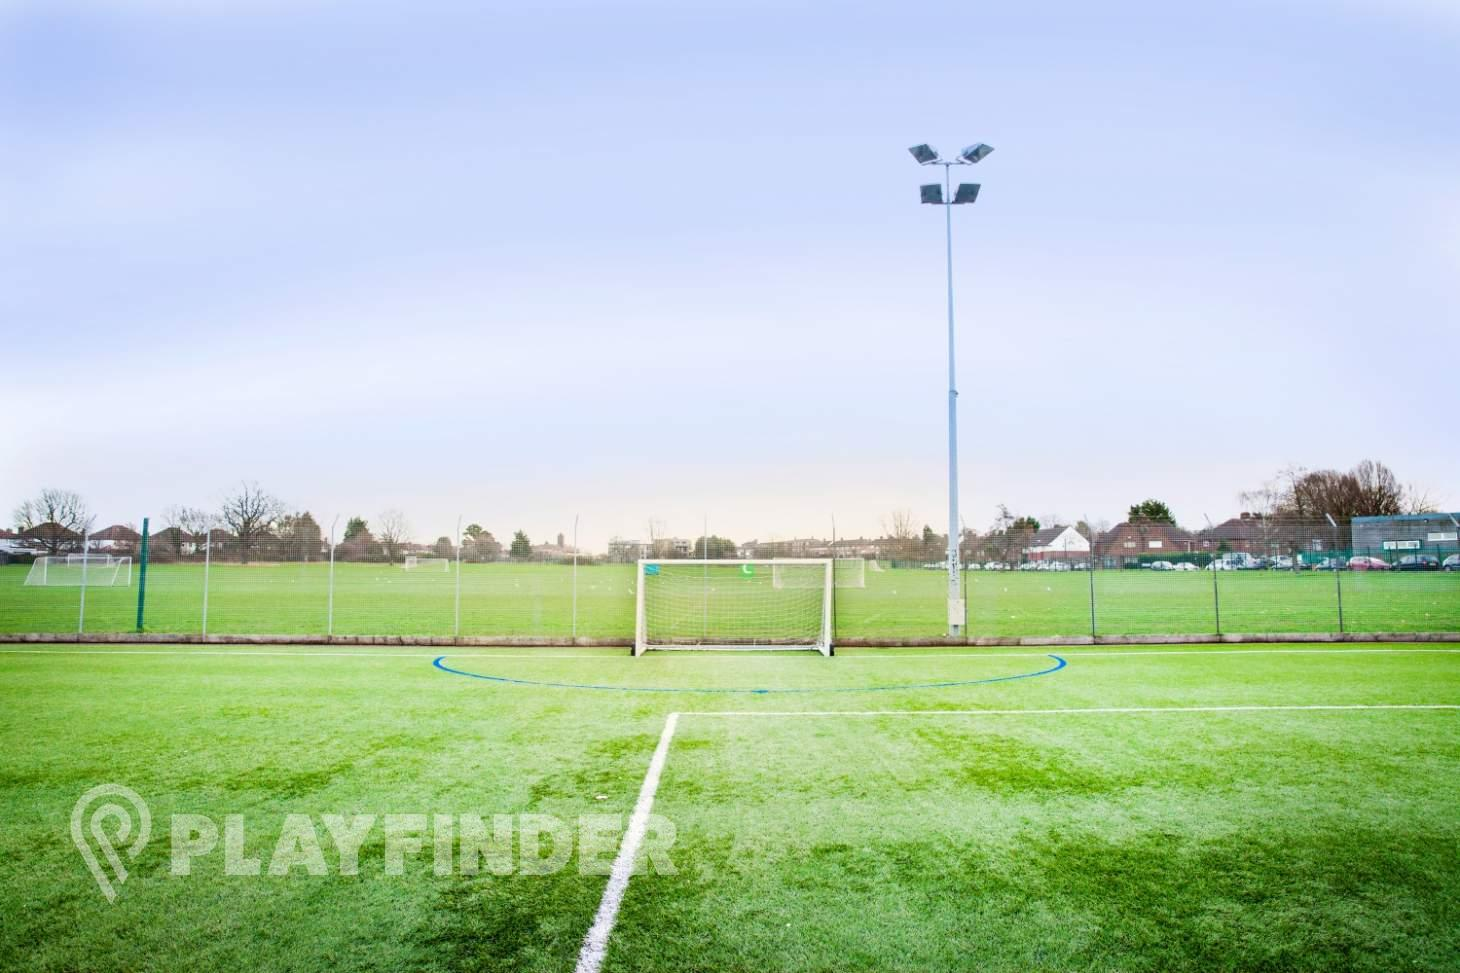 Coldharbour Leisure Centre 7 a side | 3G Astroturf football pitch